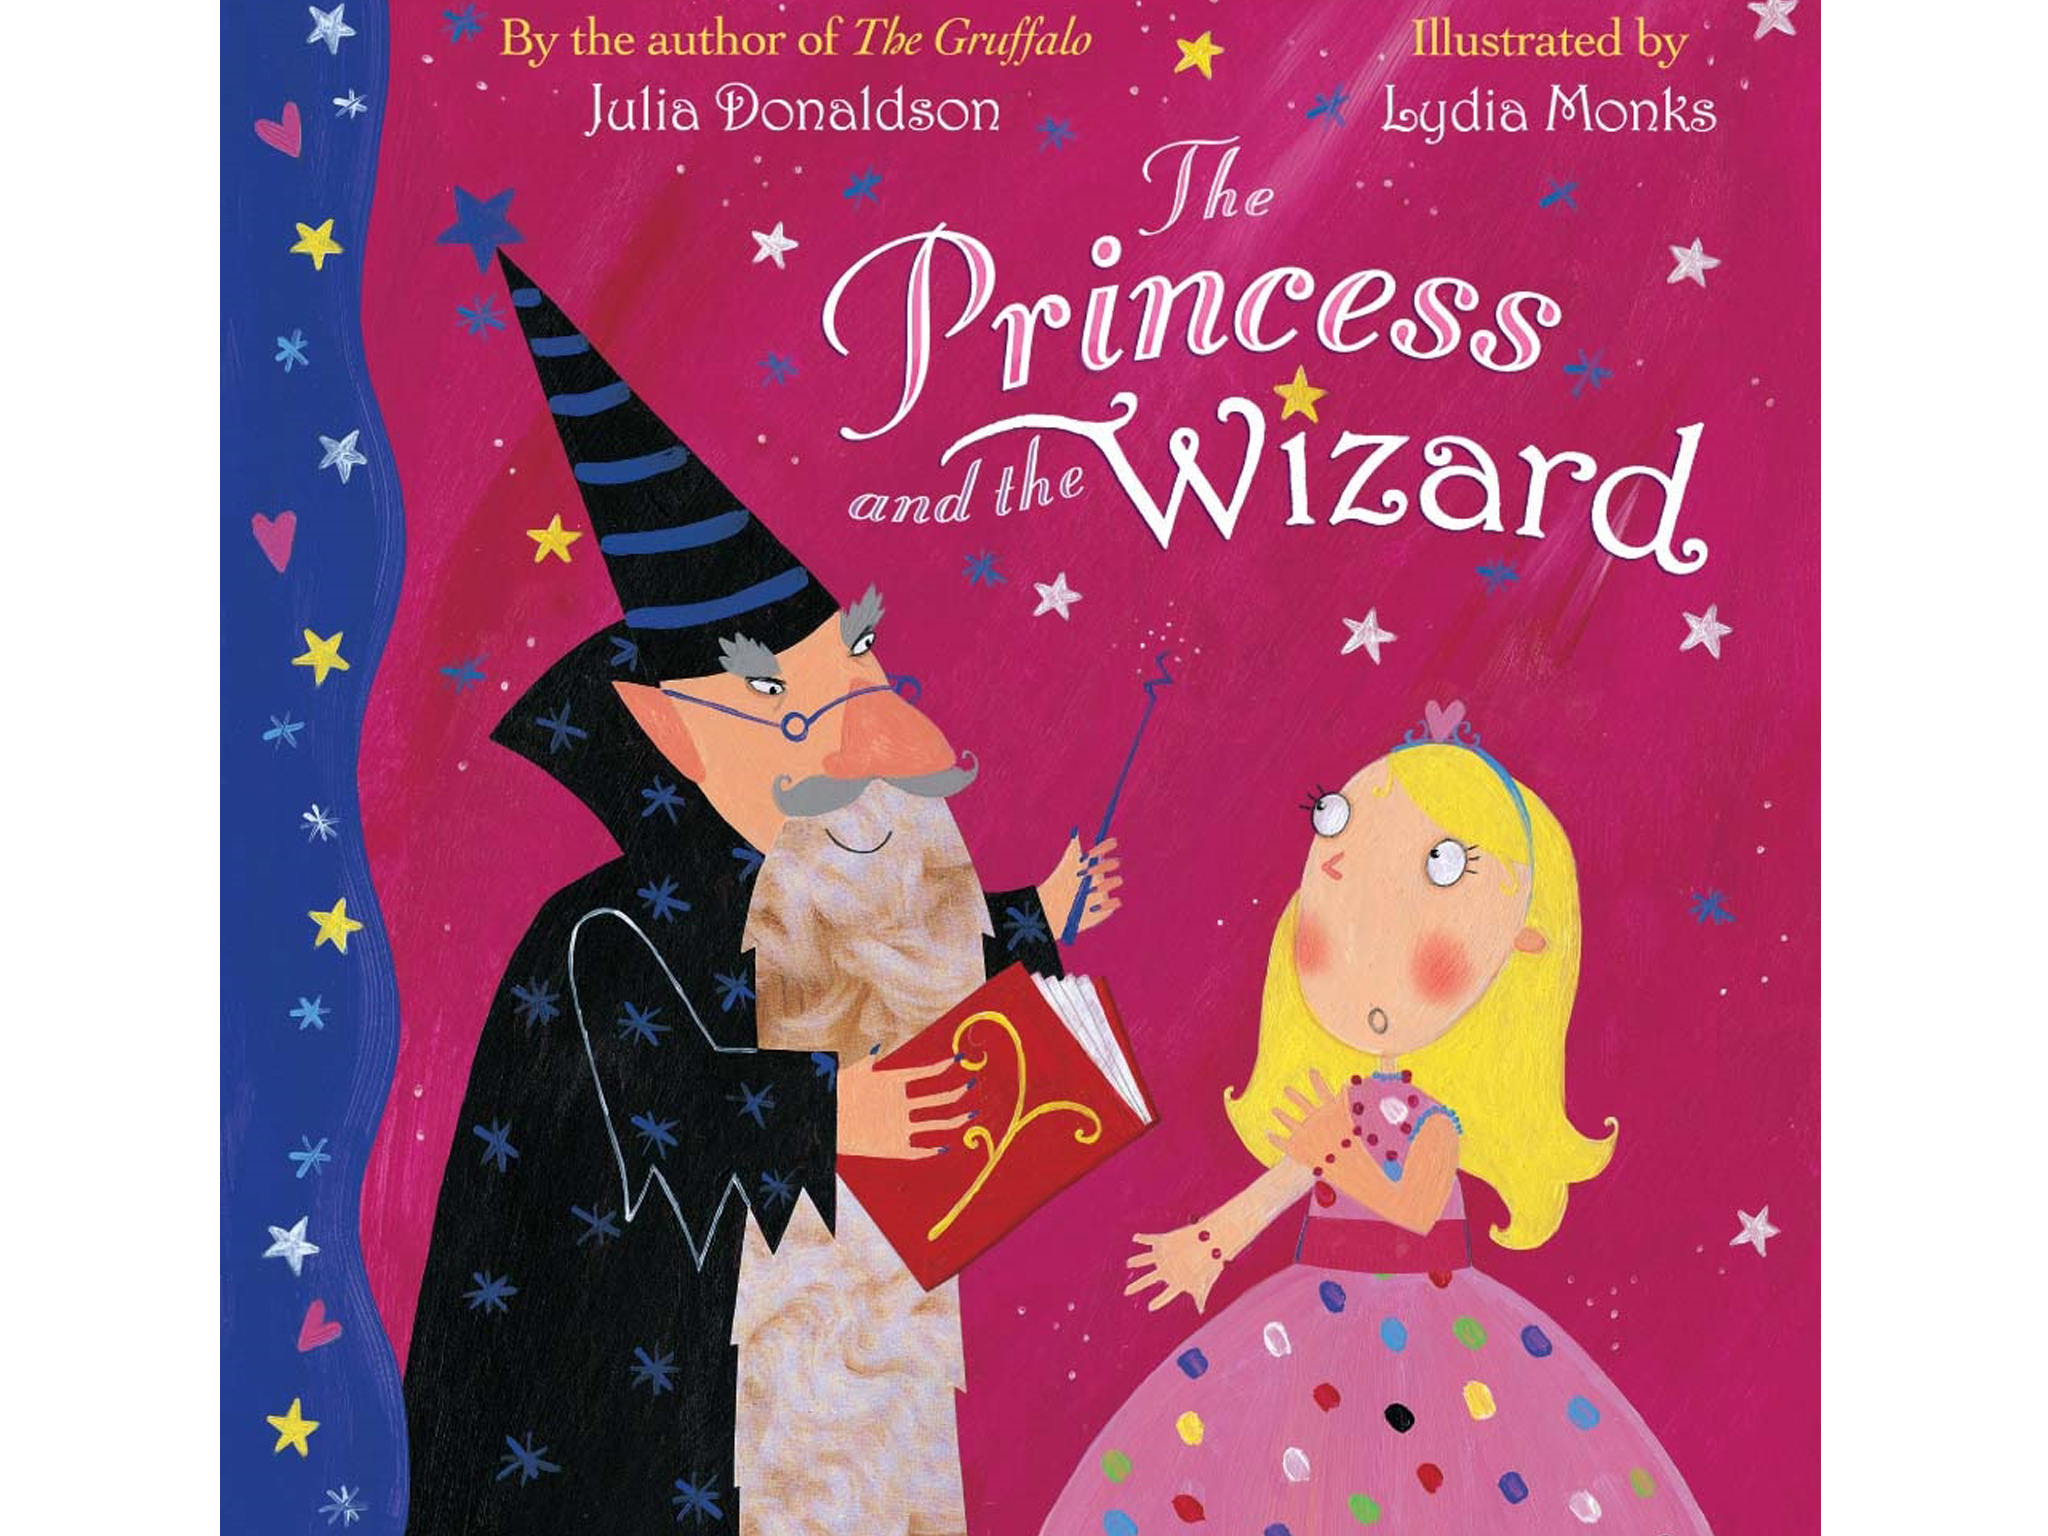 100 best children's books: The Princess and the Wizard